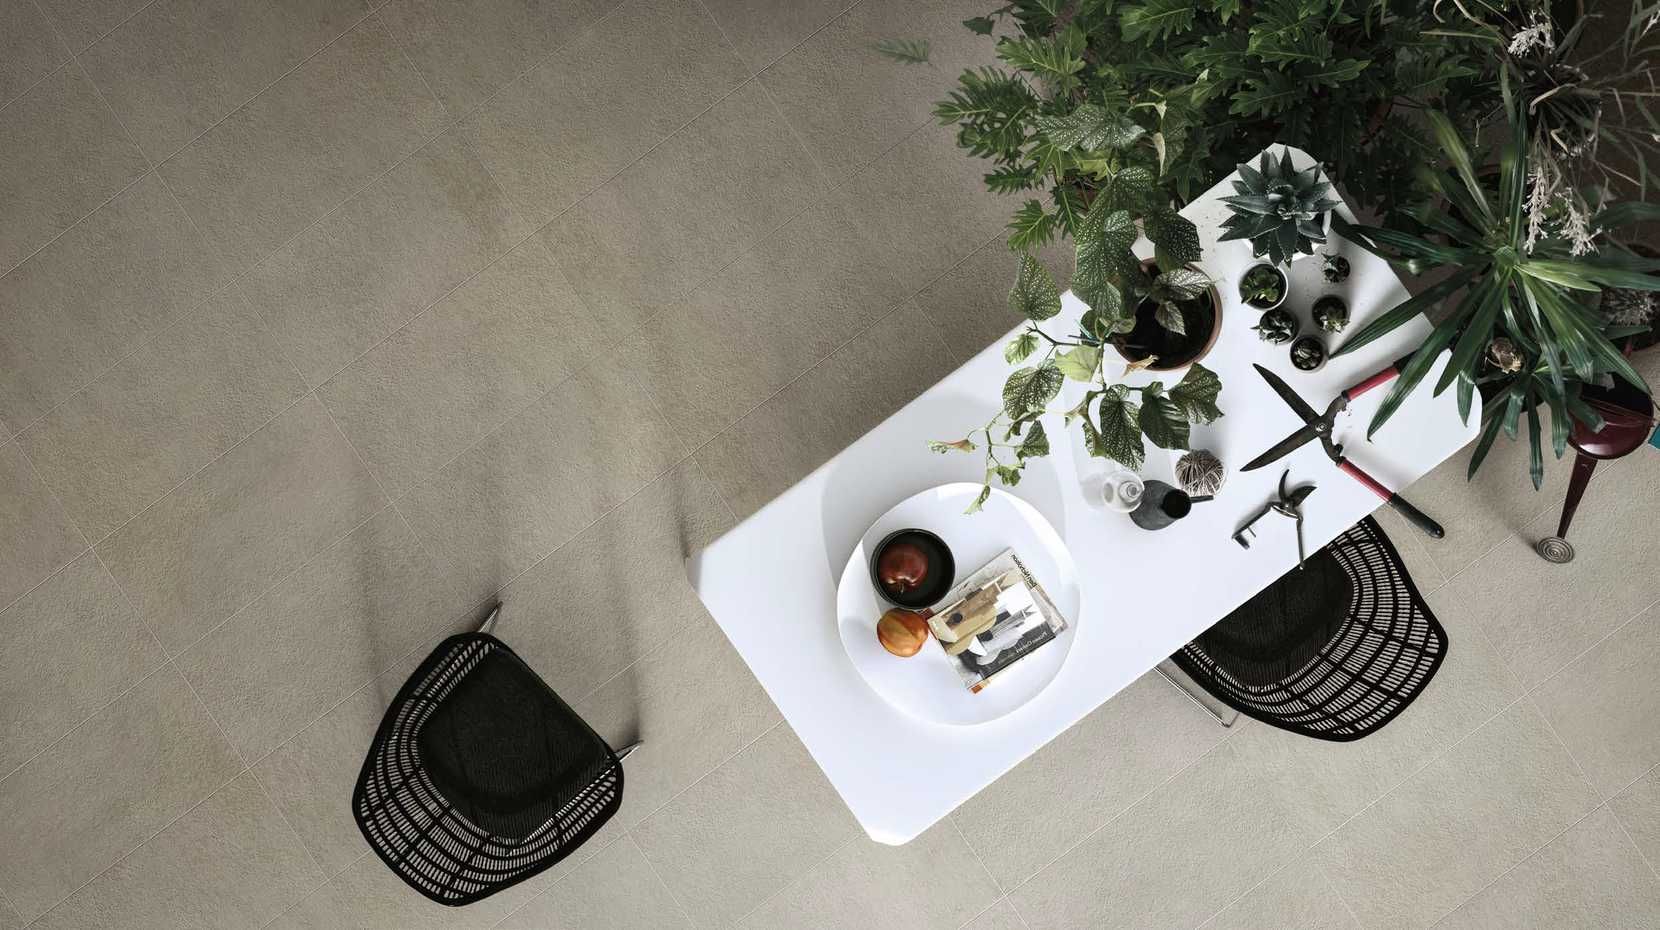 Matrice by Cedit product image 3